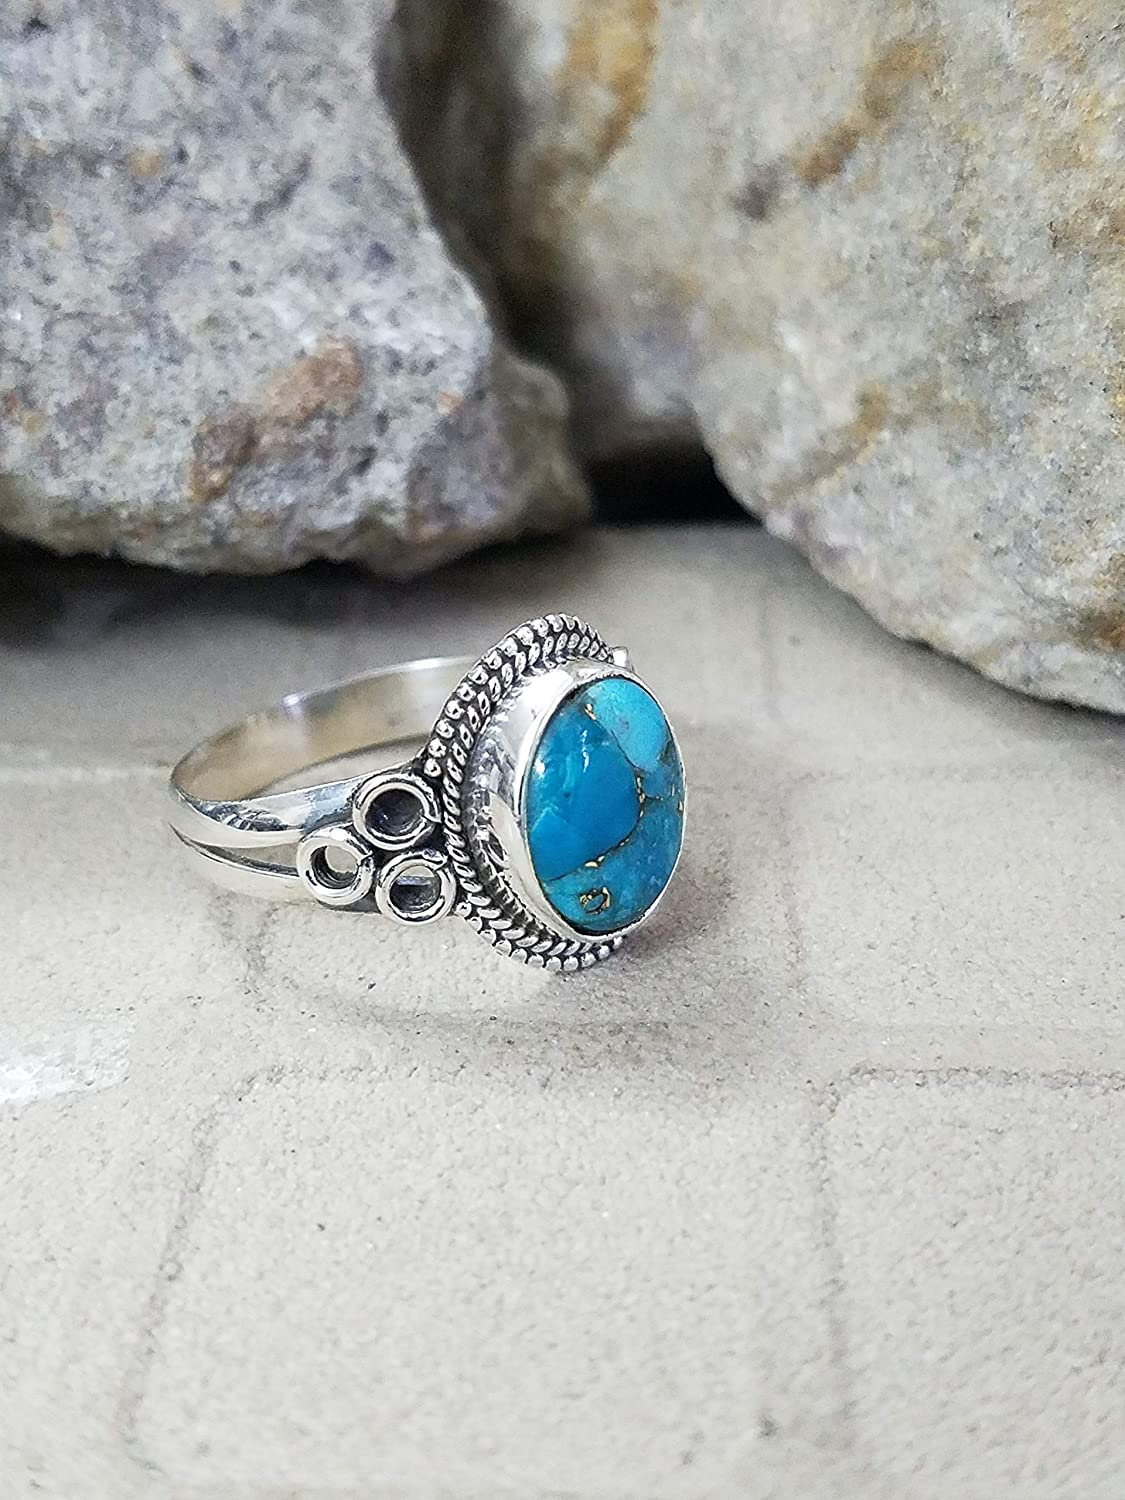 Blue Copper Turquoise Ring, 925 Sterling Silver Ring, Fashionable Ring, Stylish Ring, Anniversary Gift, Attractive Ring, Fashionable Ring, Ring For Her, Fine Jewelry, Genuine Ring, Graceful Ring, US All Size Ring......